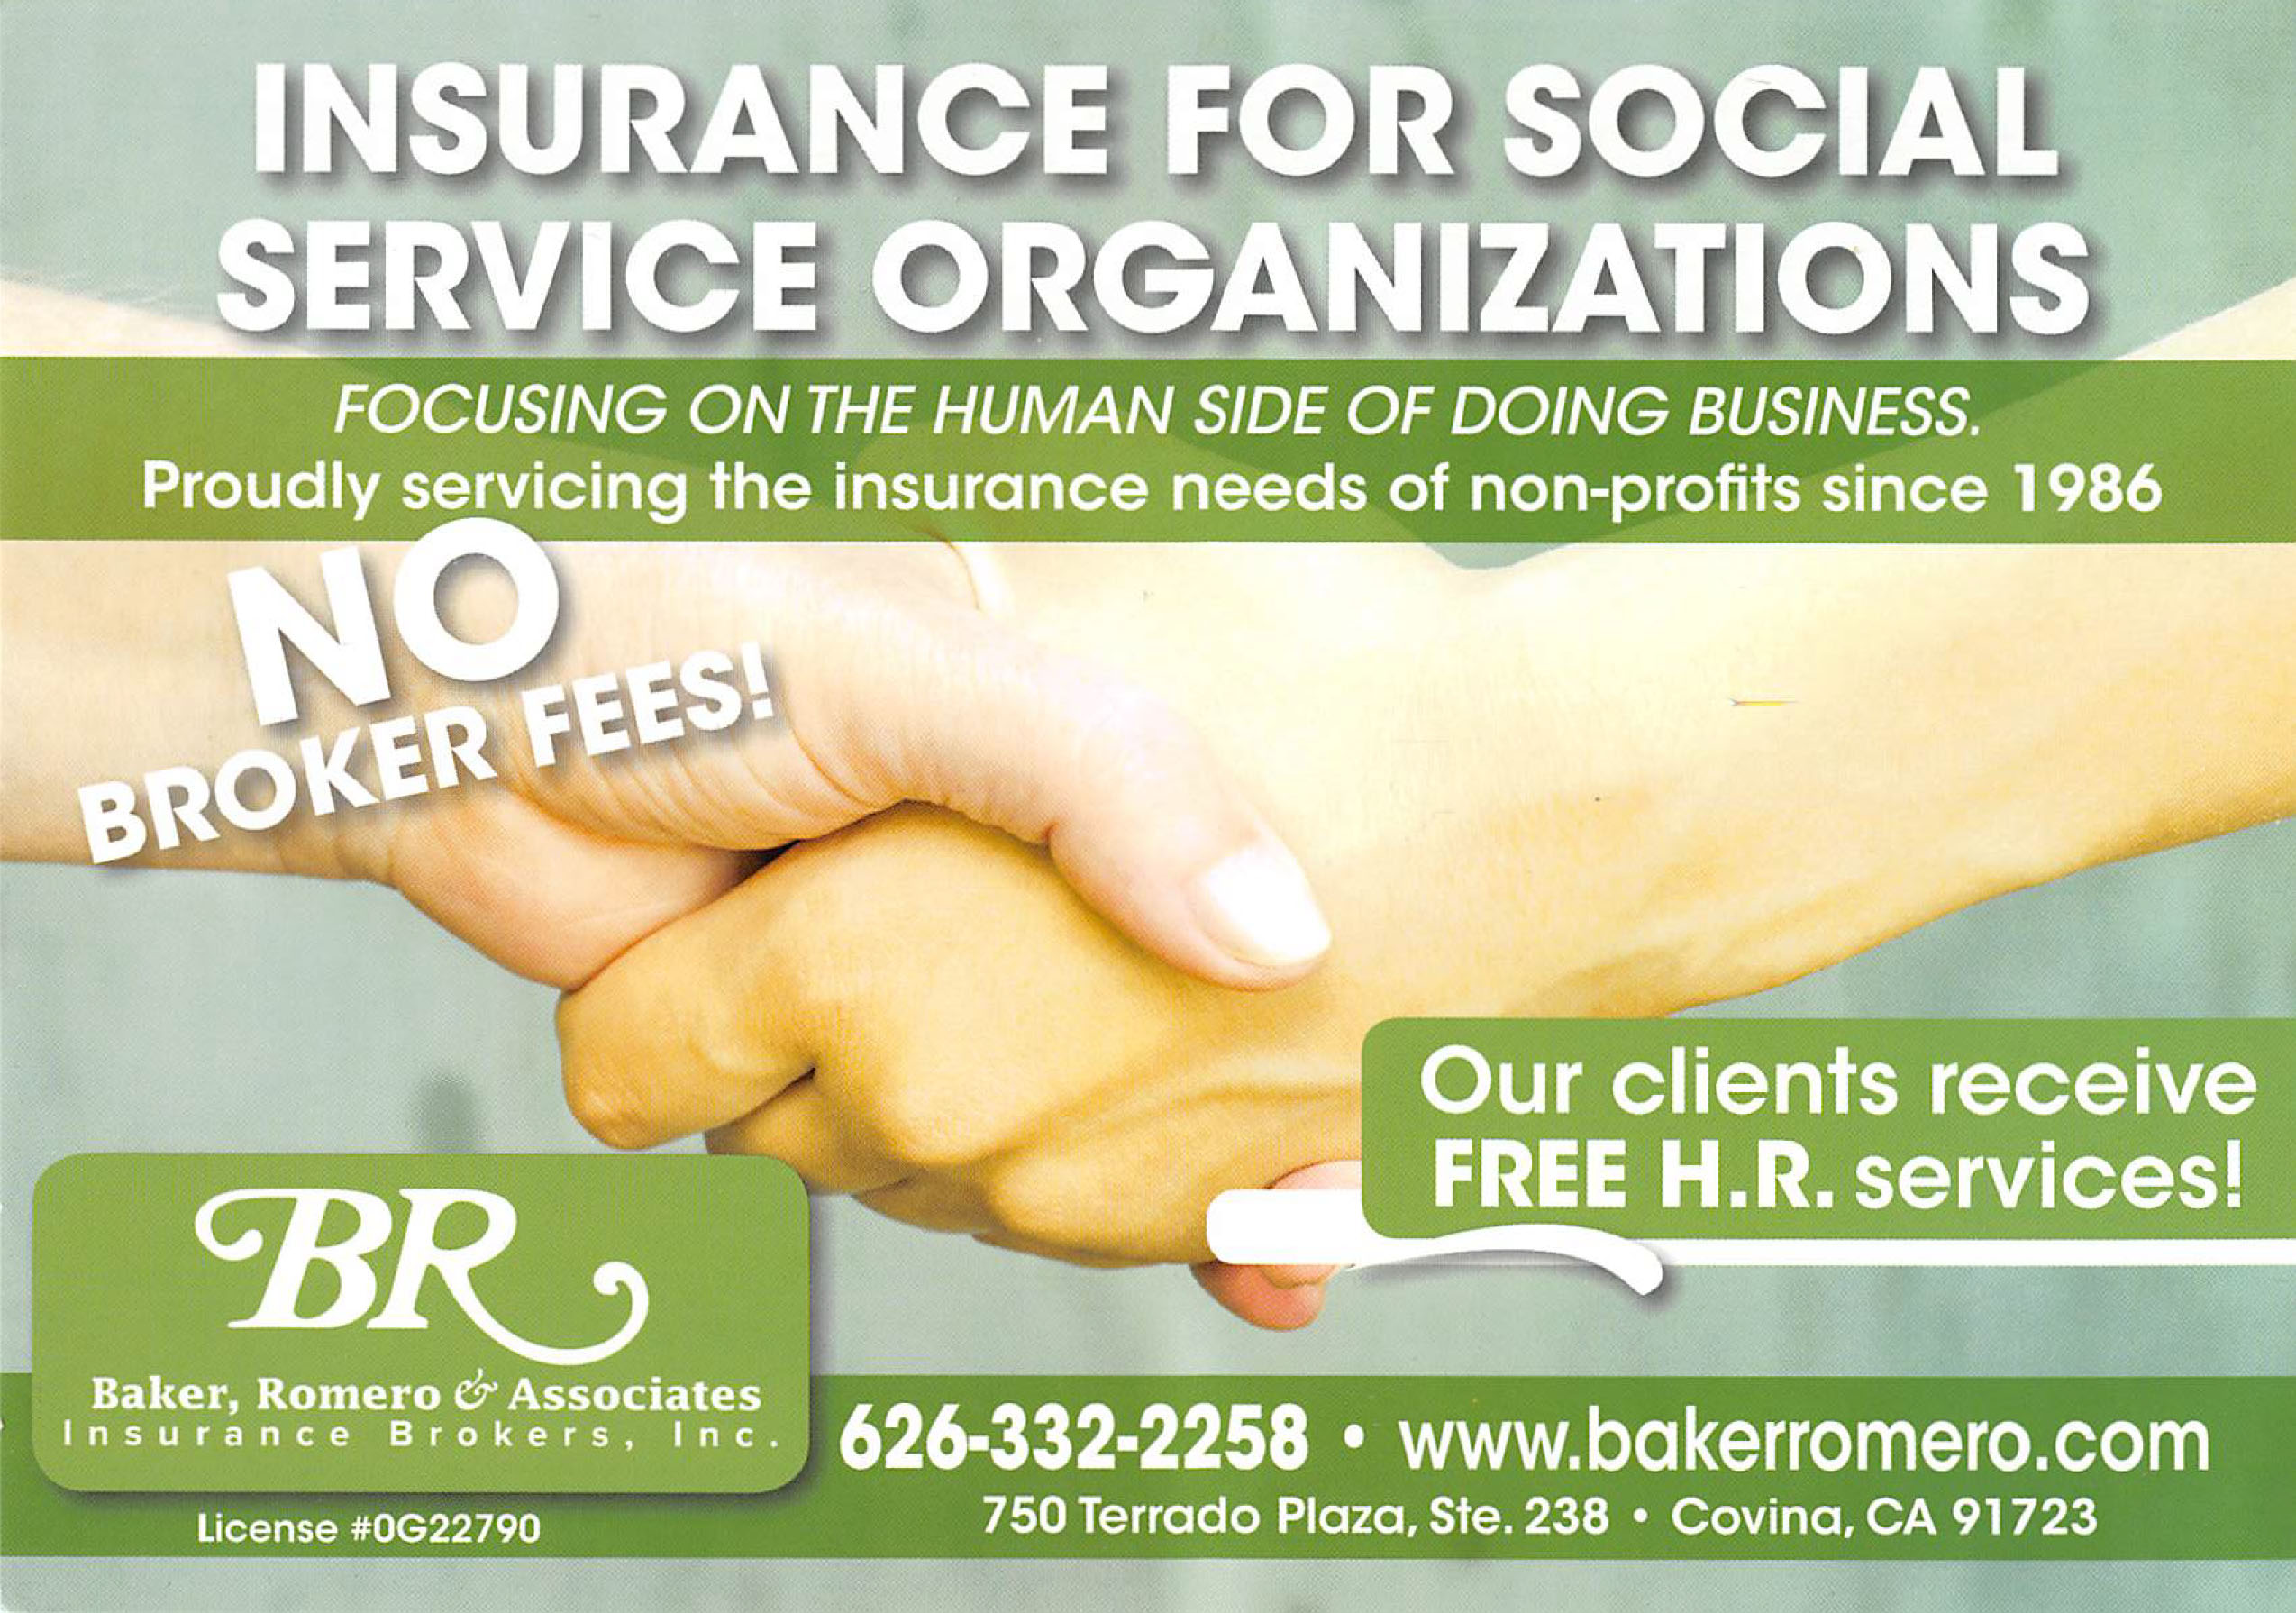 Insurance flyer for social organizations-1